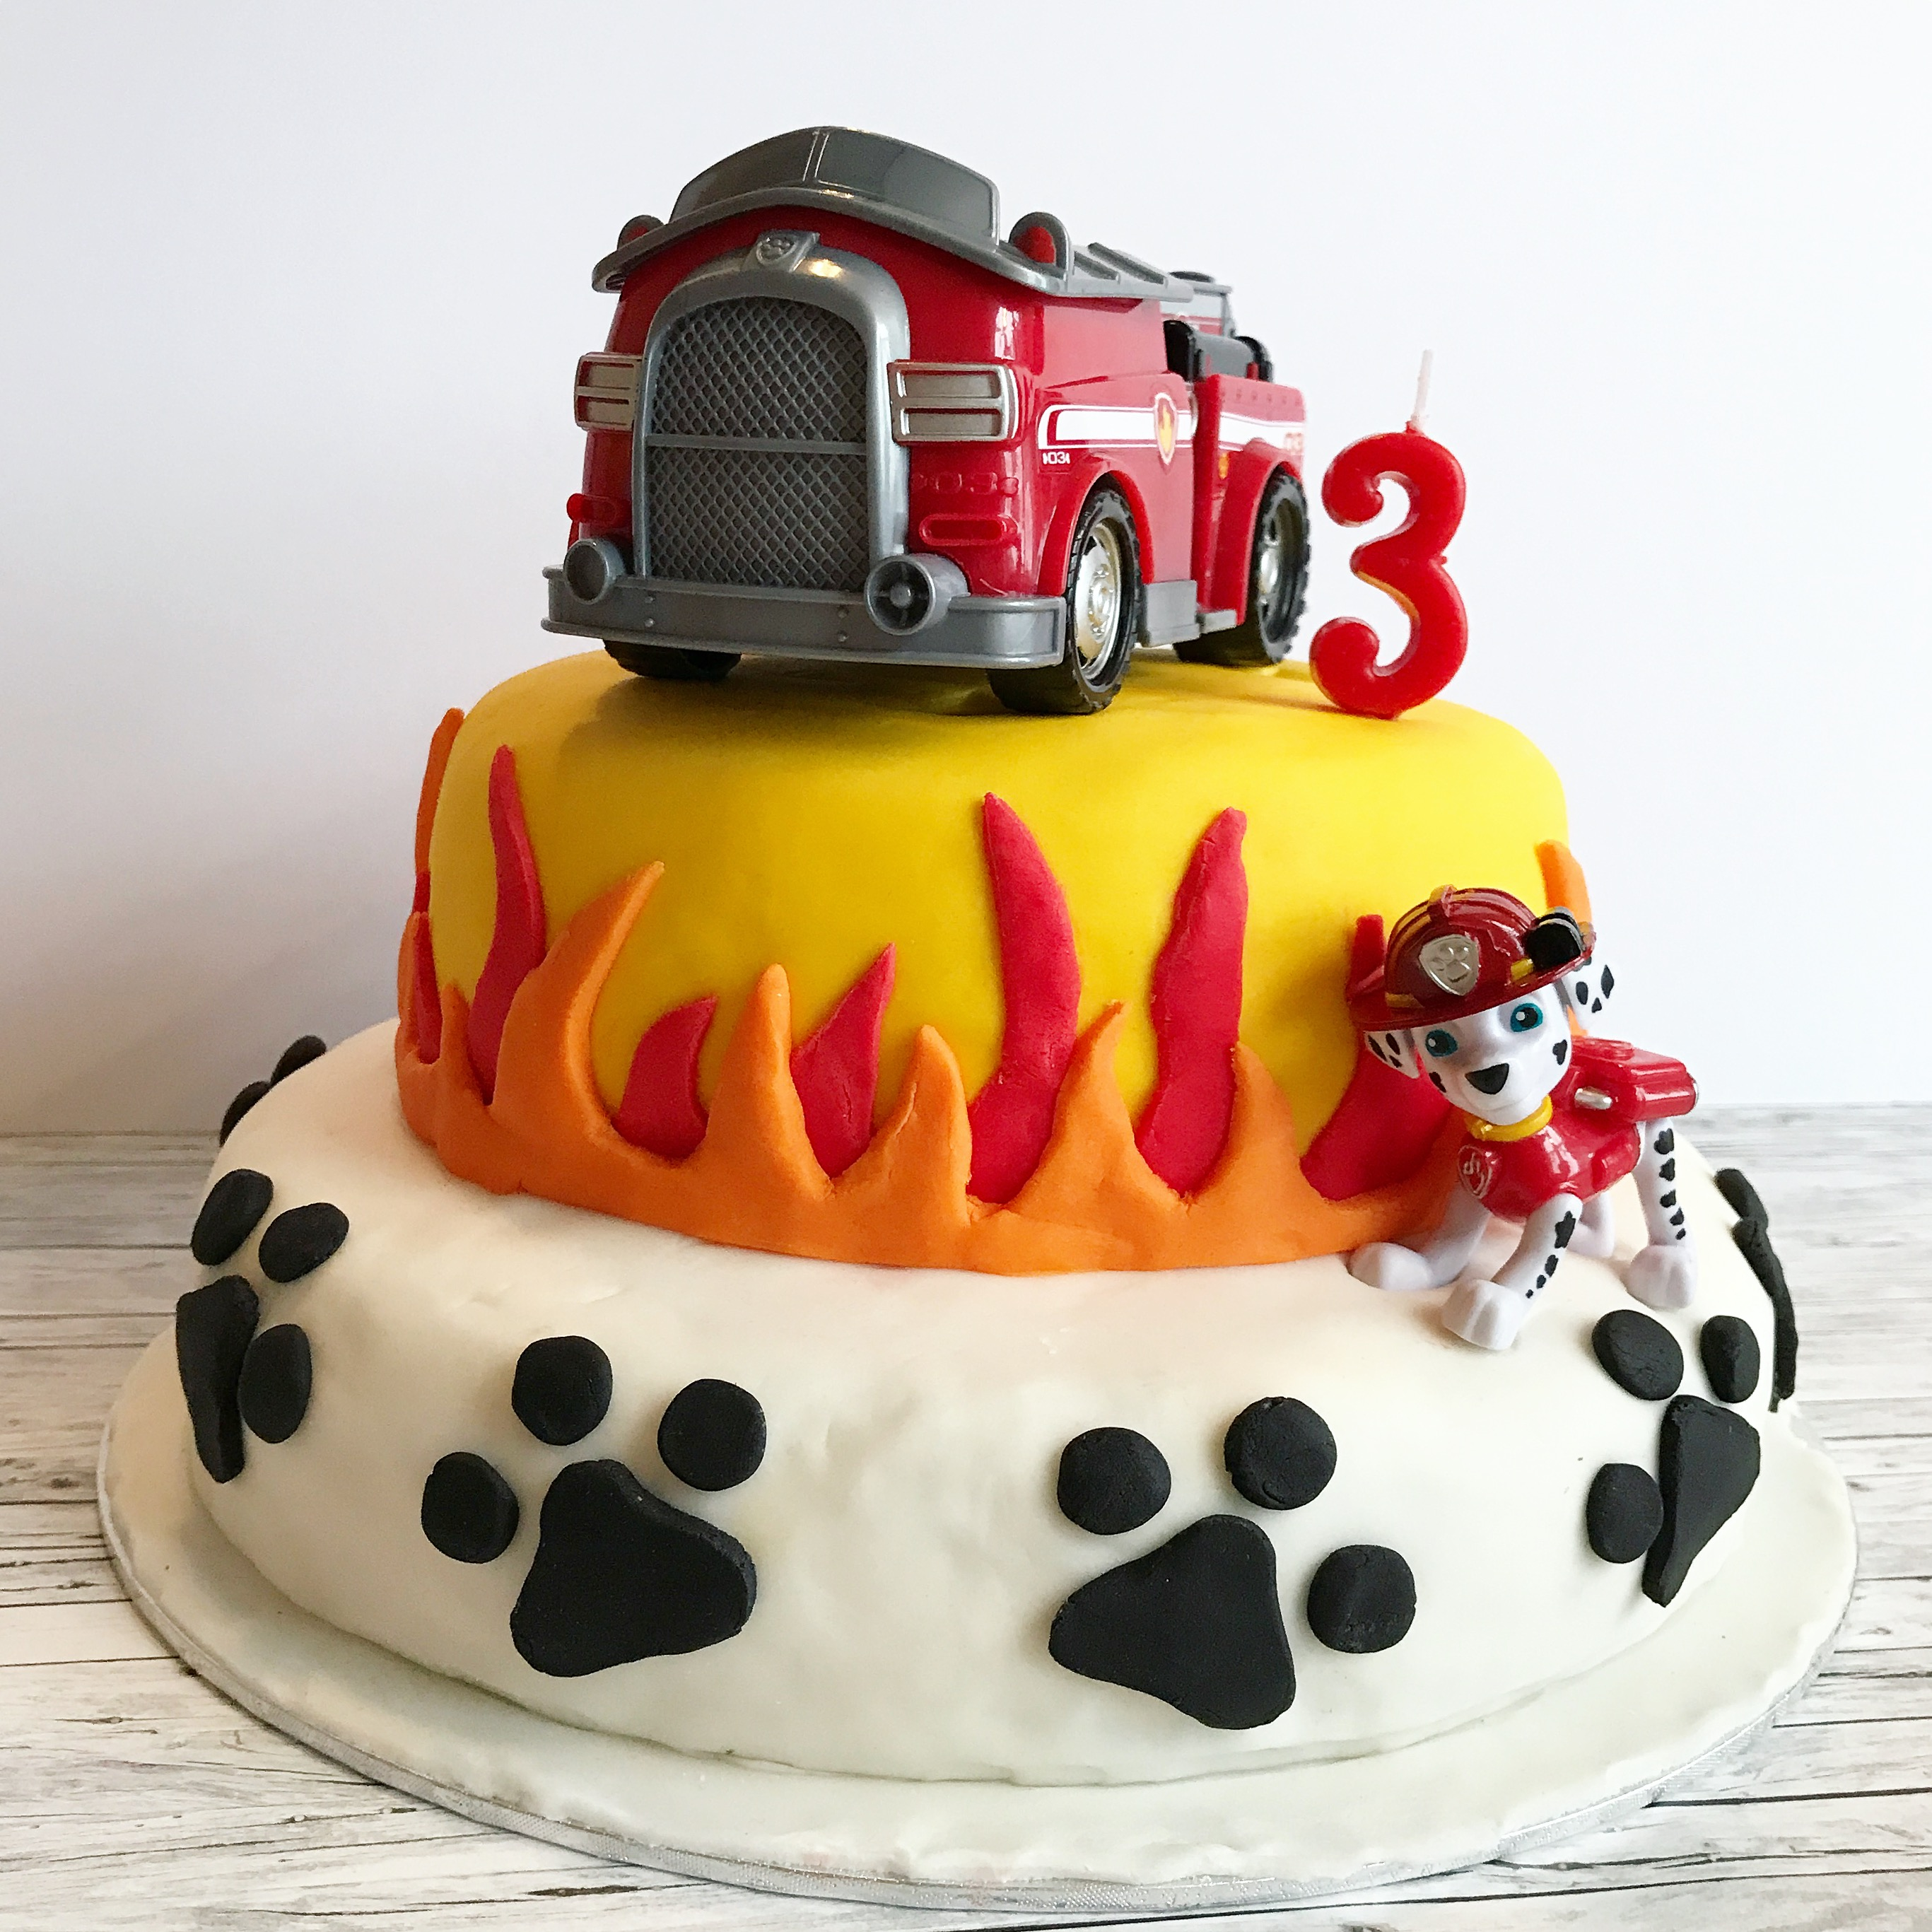 He Specifically Asked For A Paw Patrol Cake With Fire Truck And Marshall Note The Dog As You Can See I Took Easy Way Out Just Stuck